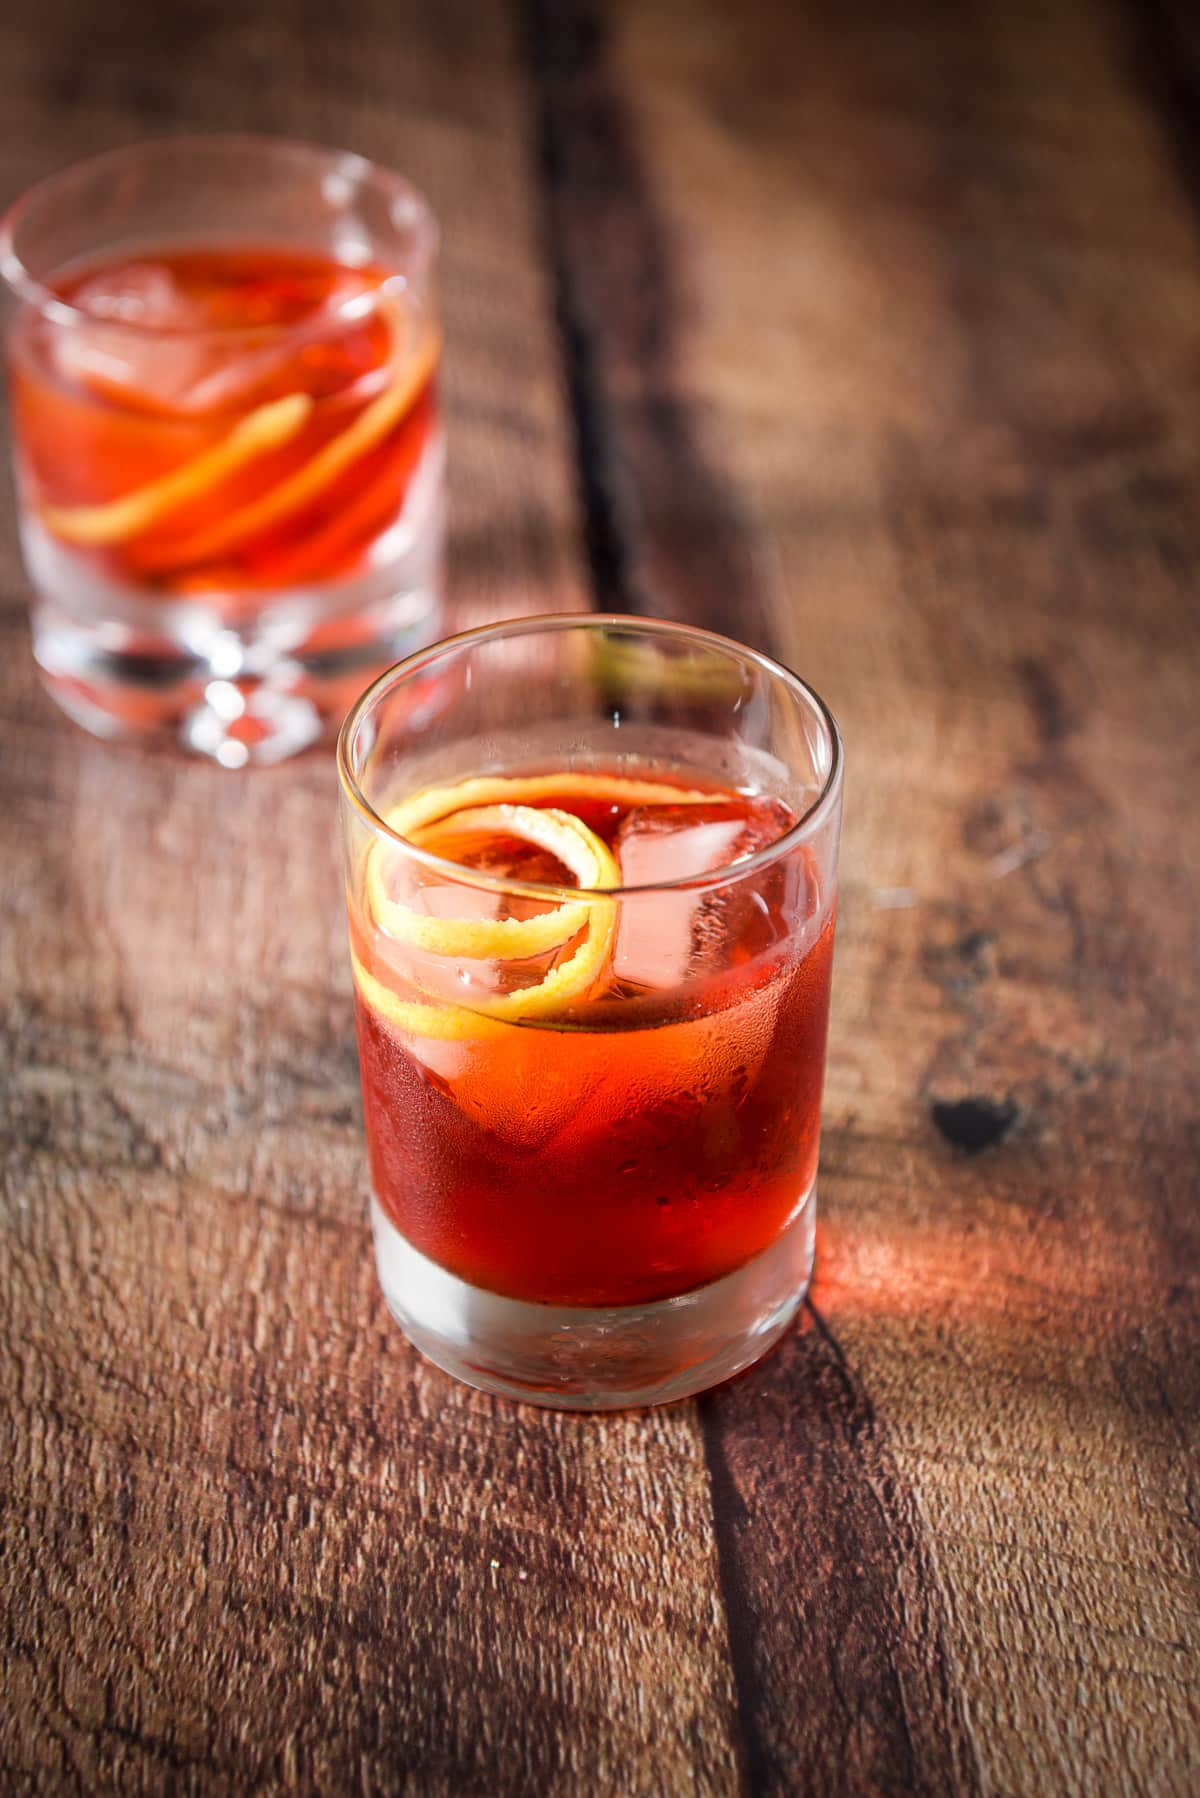 The taller double old fashioned glass filled with the negroni with the twist as garnish